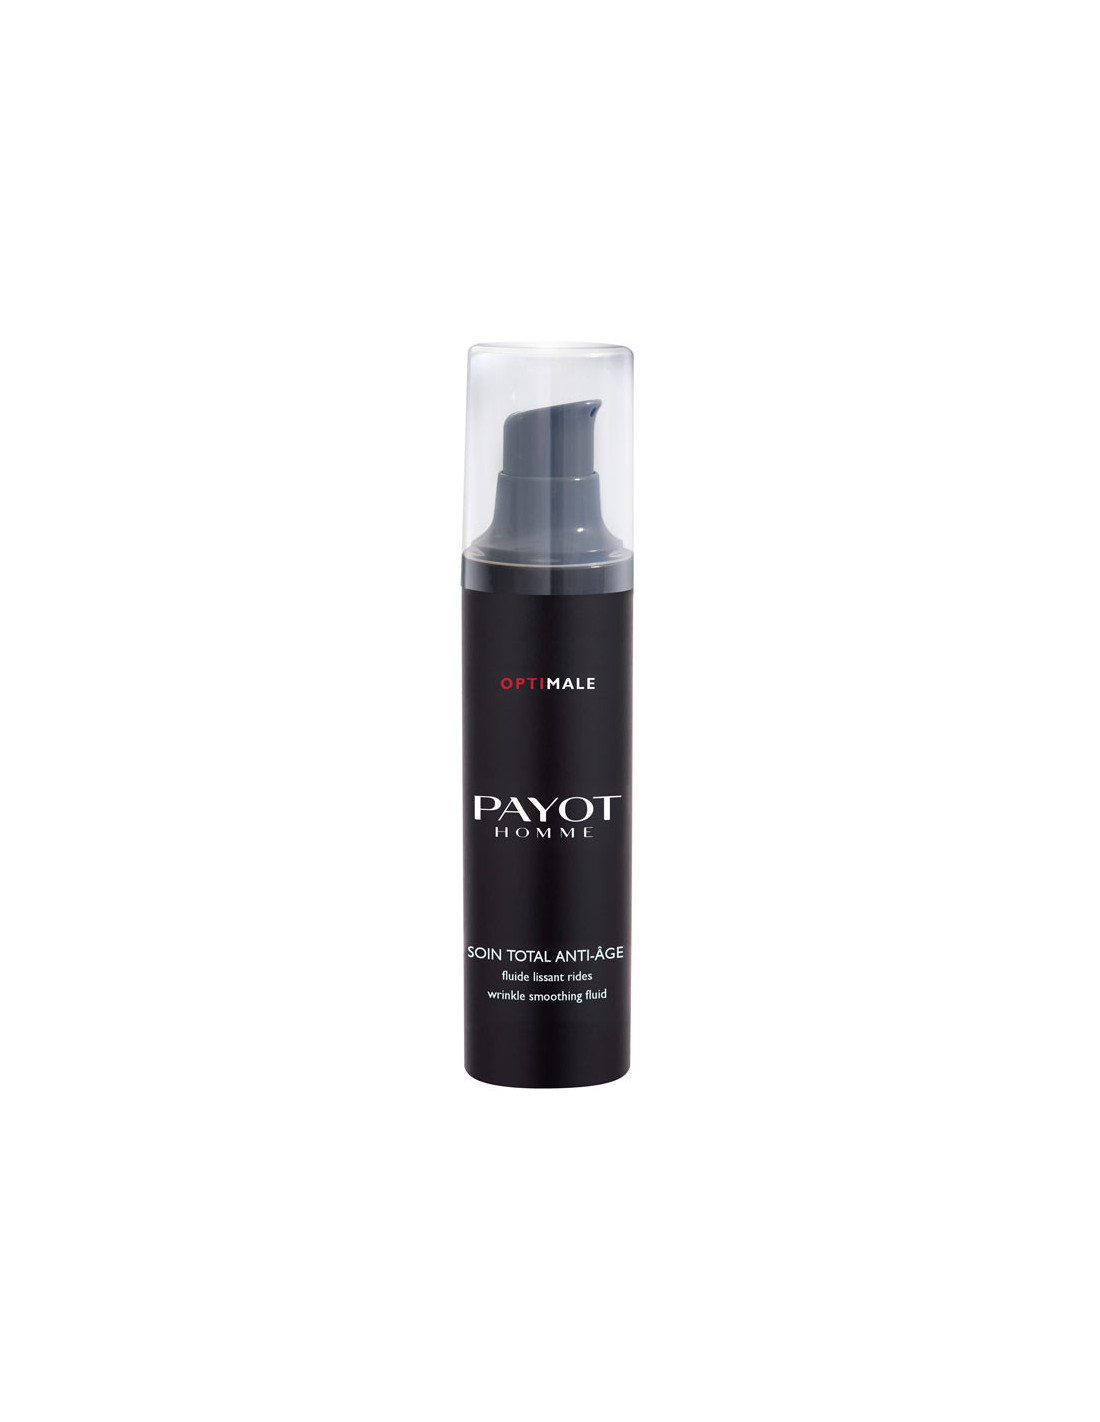 Payot Homme Optimale Soin Total Anti-Âge - 50 ml